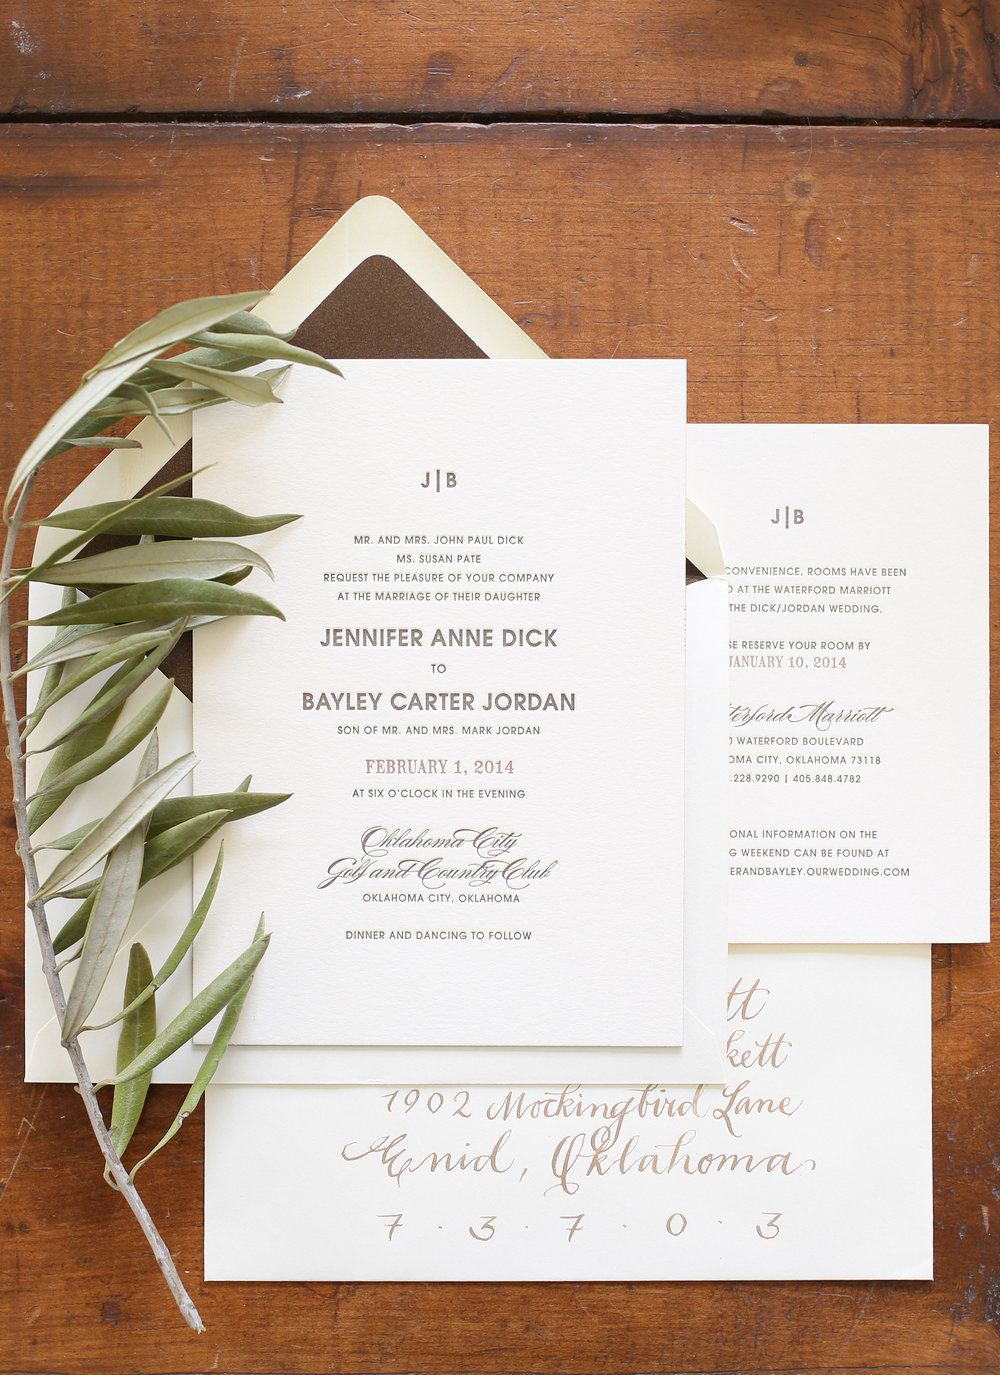 Aaron_Snow_Photography_Dick-Jordan_Wedding_Invitations.010.jpg